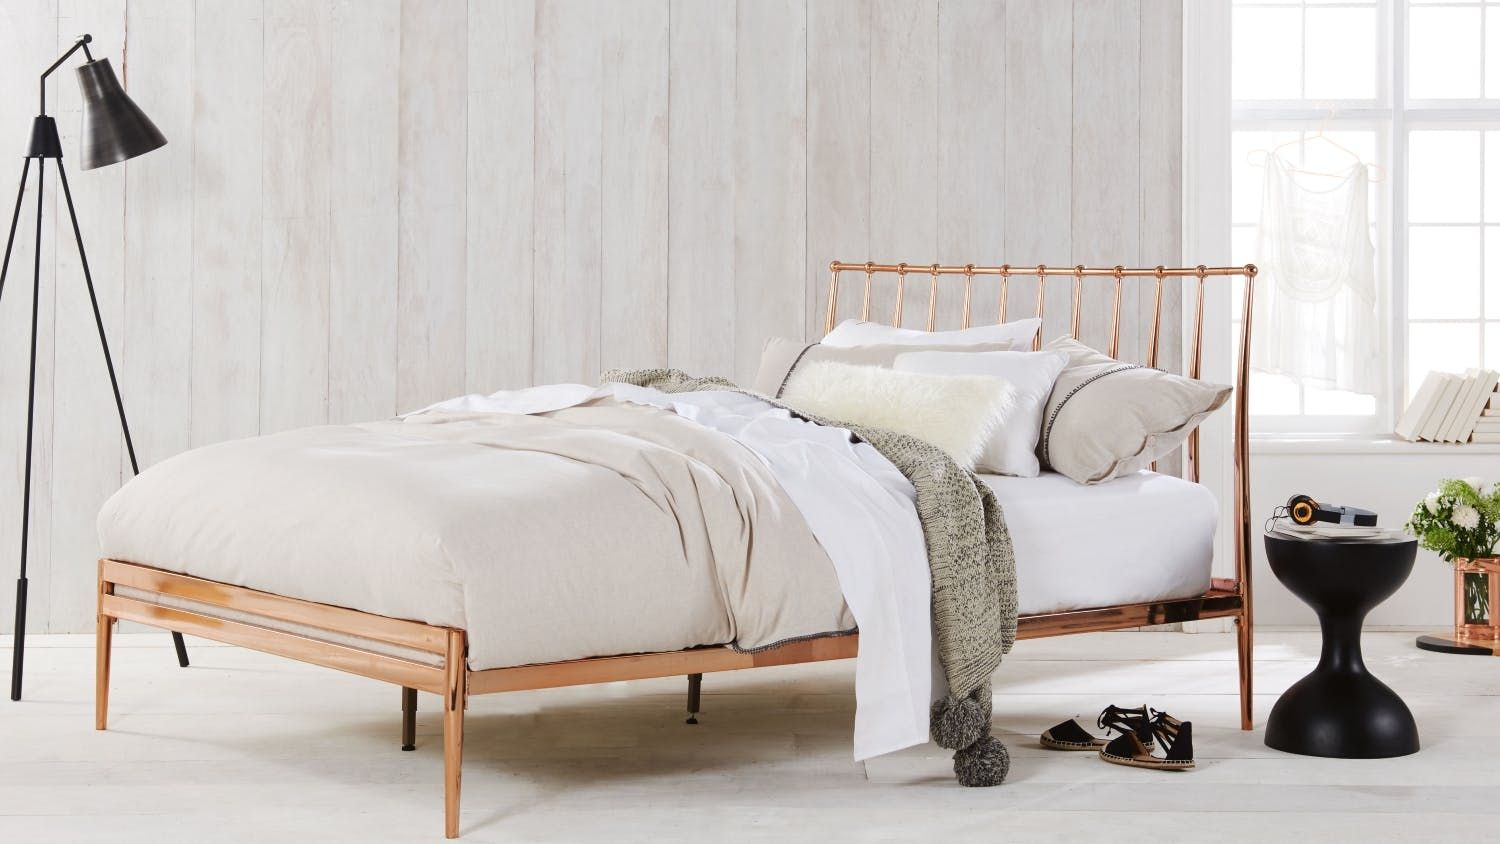 Home :: Bedroom :: Beds :: Bed Frames :: Coppa Bed Frame | My new ...